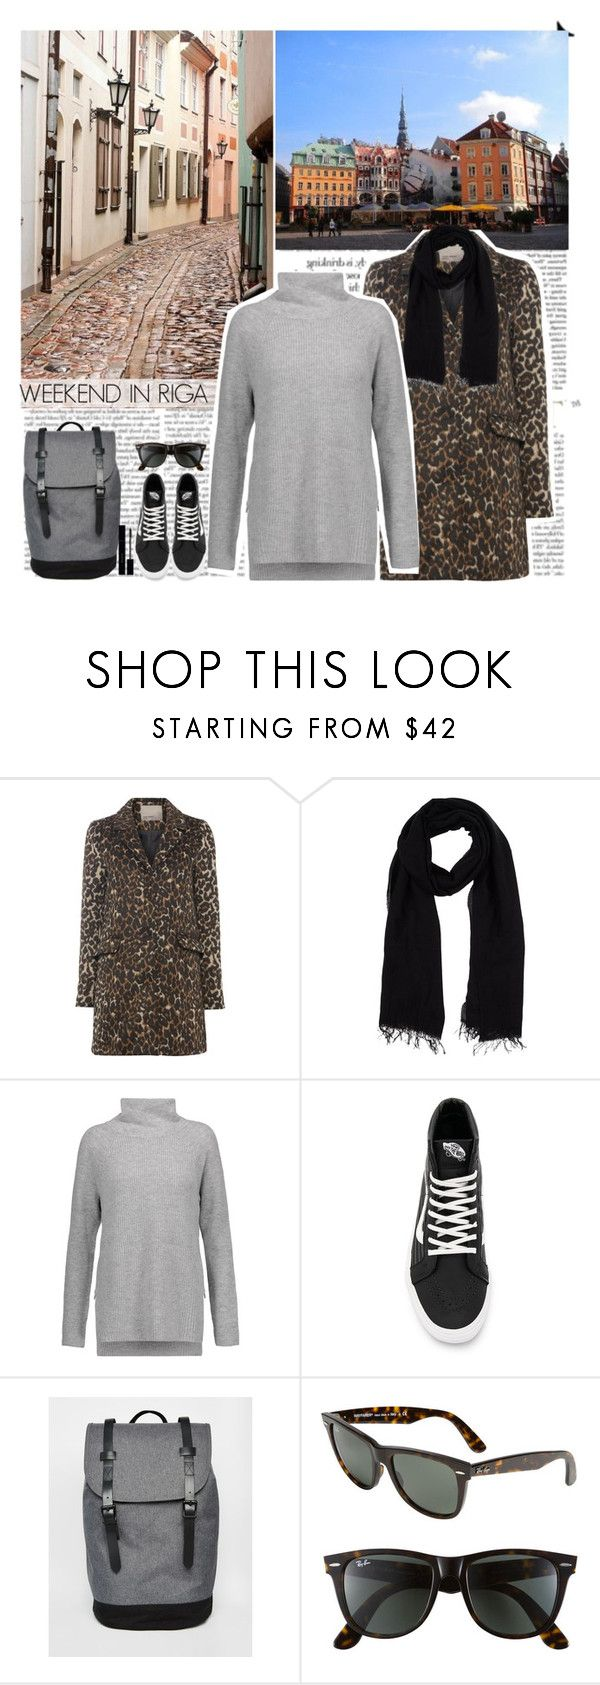 """""""My look for weekend in Riga"""" by helena99 ❤ liked on Polyvore featuring Vero Moda, Blue Les Copains, Vince, Vans, ASOS, Ray-Ban, Gucci, travel, animalprint and whatimwearing"""